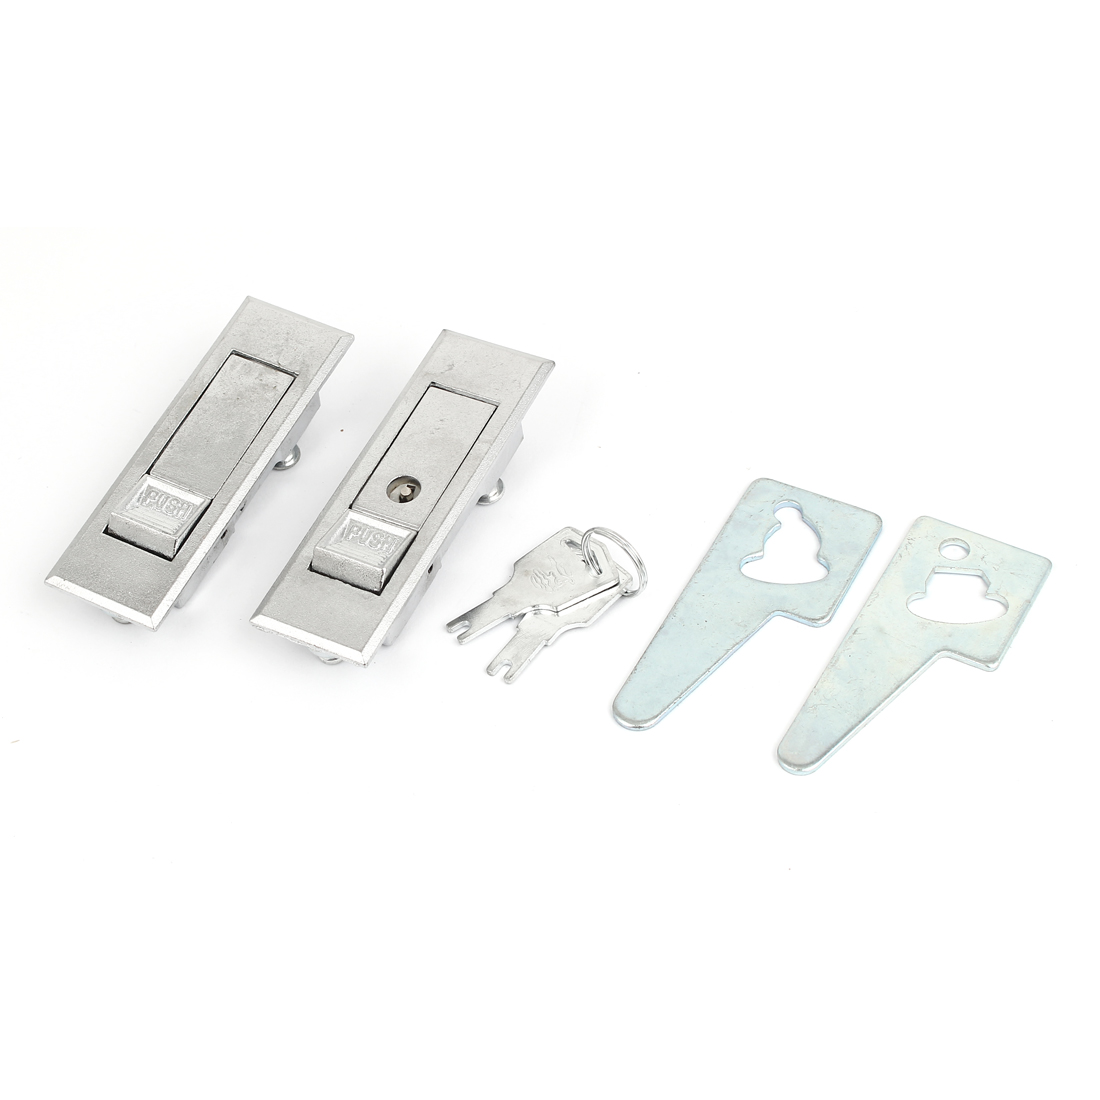 Home Office Electric Cabinet Door Push Button Metal Plane Lock 2pcs